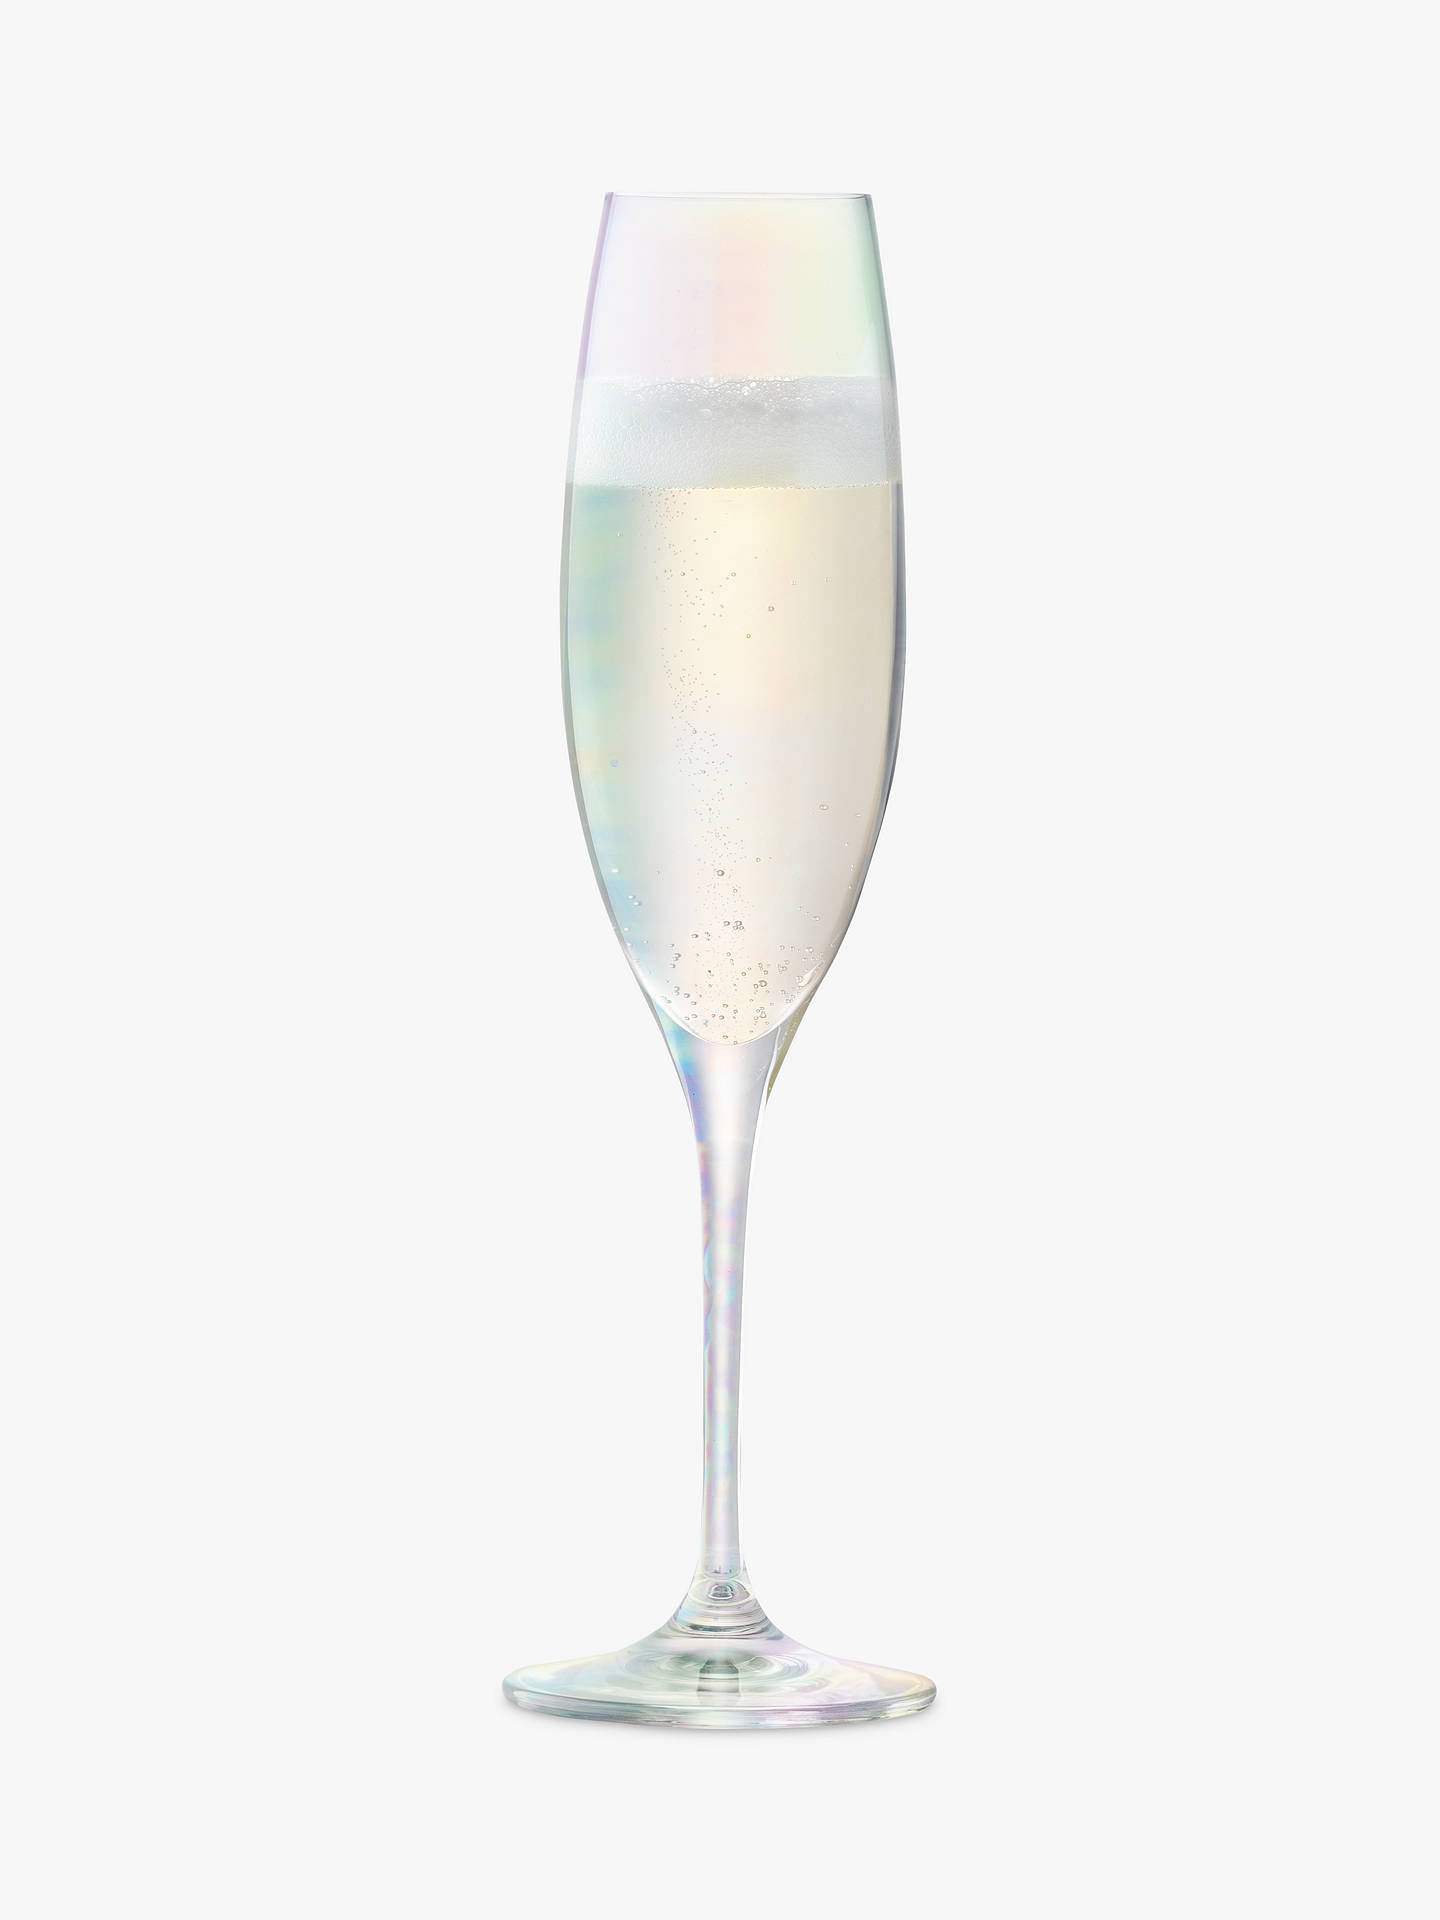 Baby champagne: description, composition, manufacturers and reviews 2